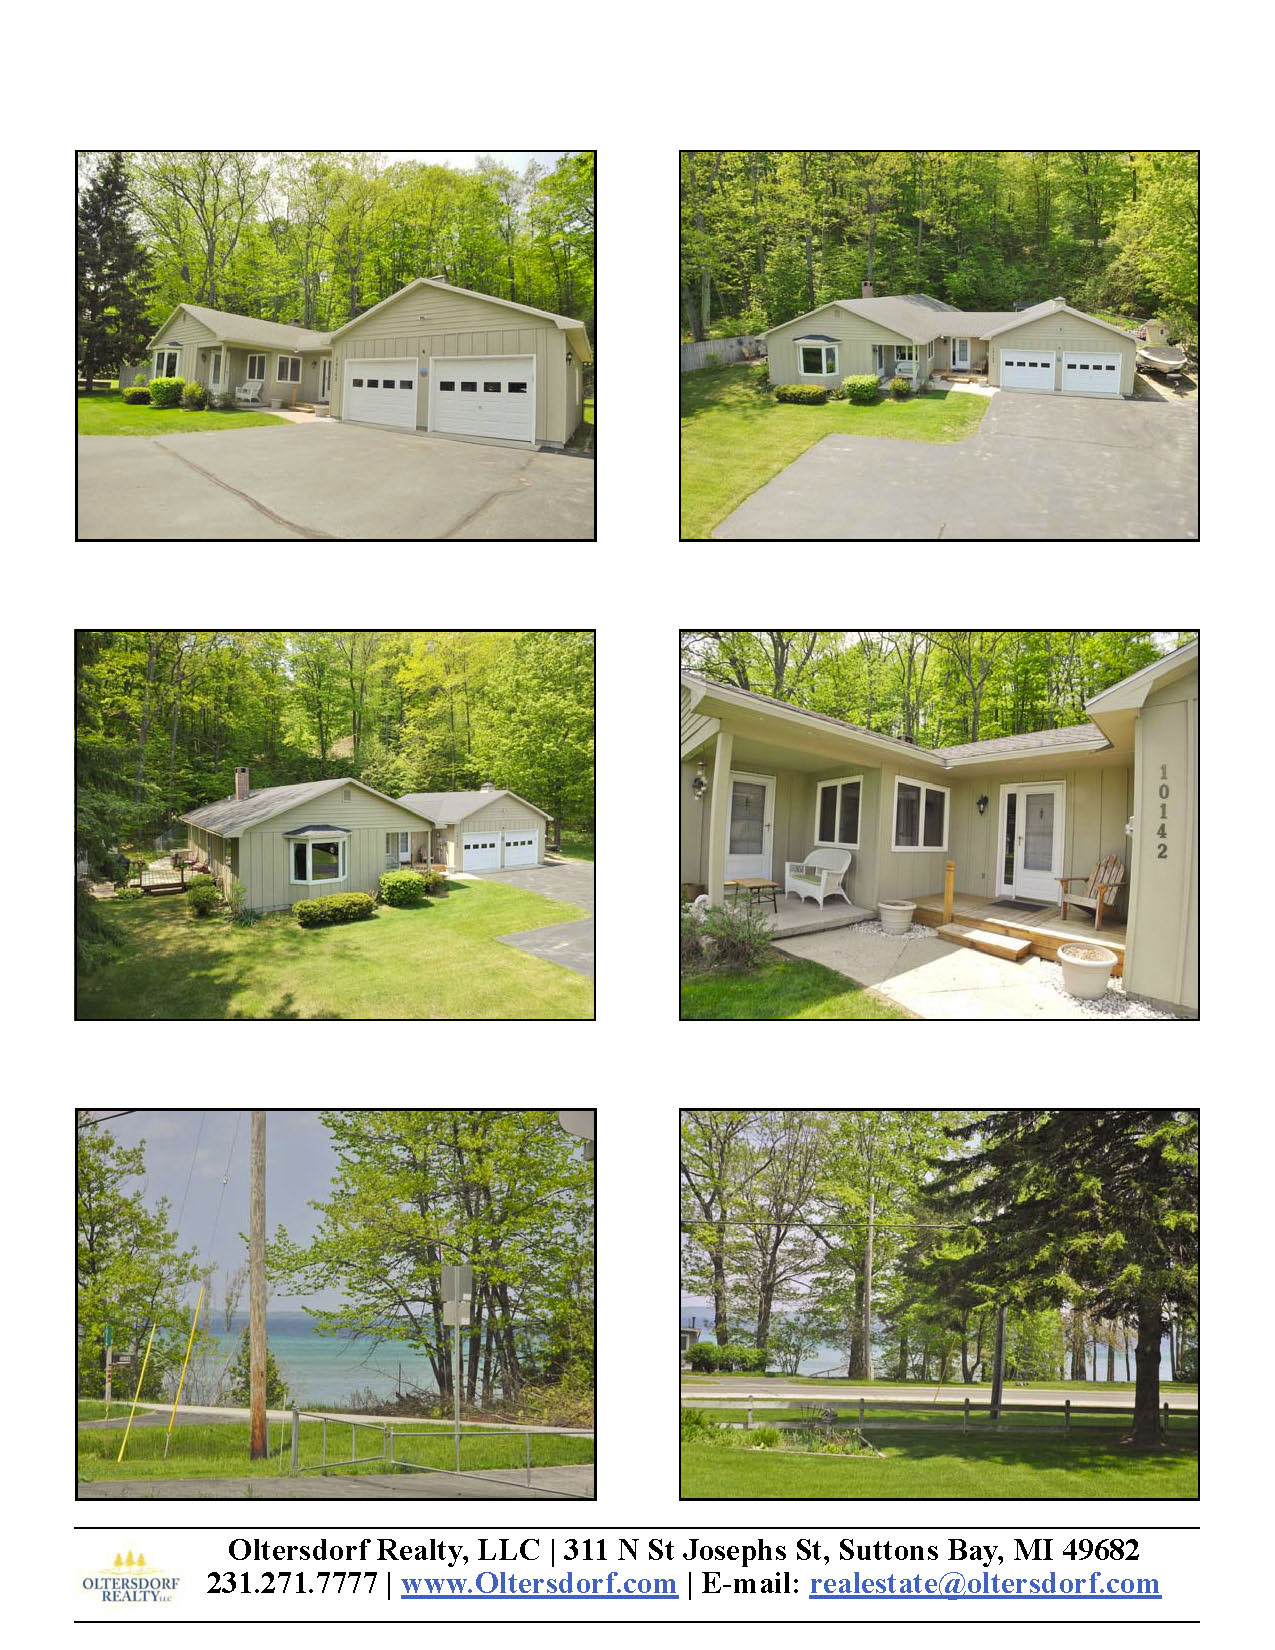 10142 S West Bay Shore Drive, Traverse City, MI - For sale by Oltersdorf Realty LLC - Marketing Packet (2).jpg